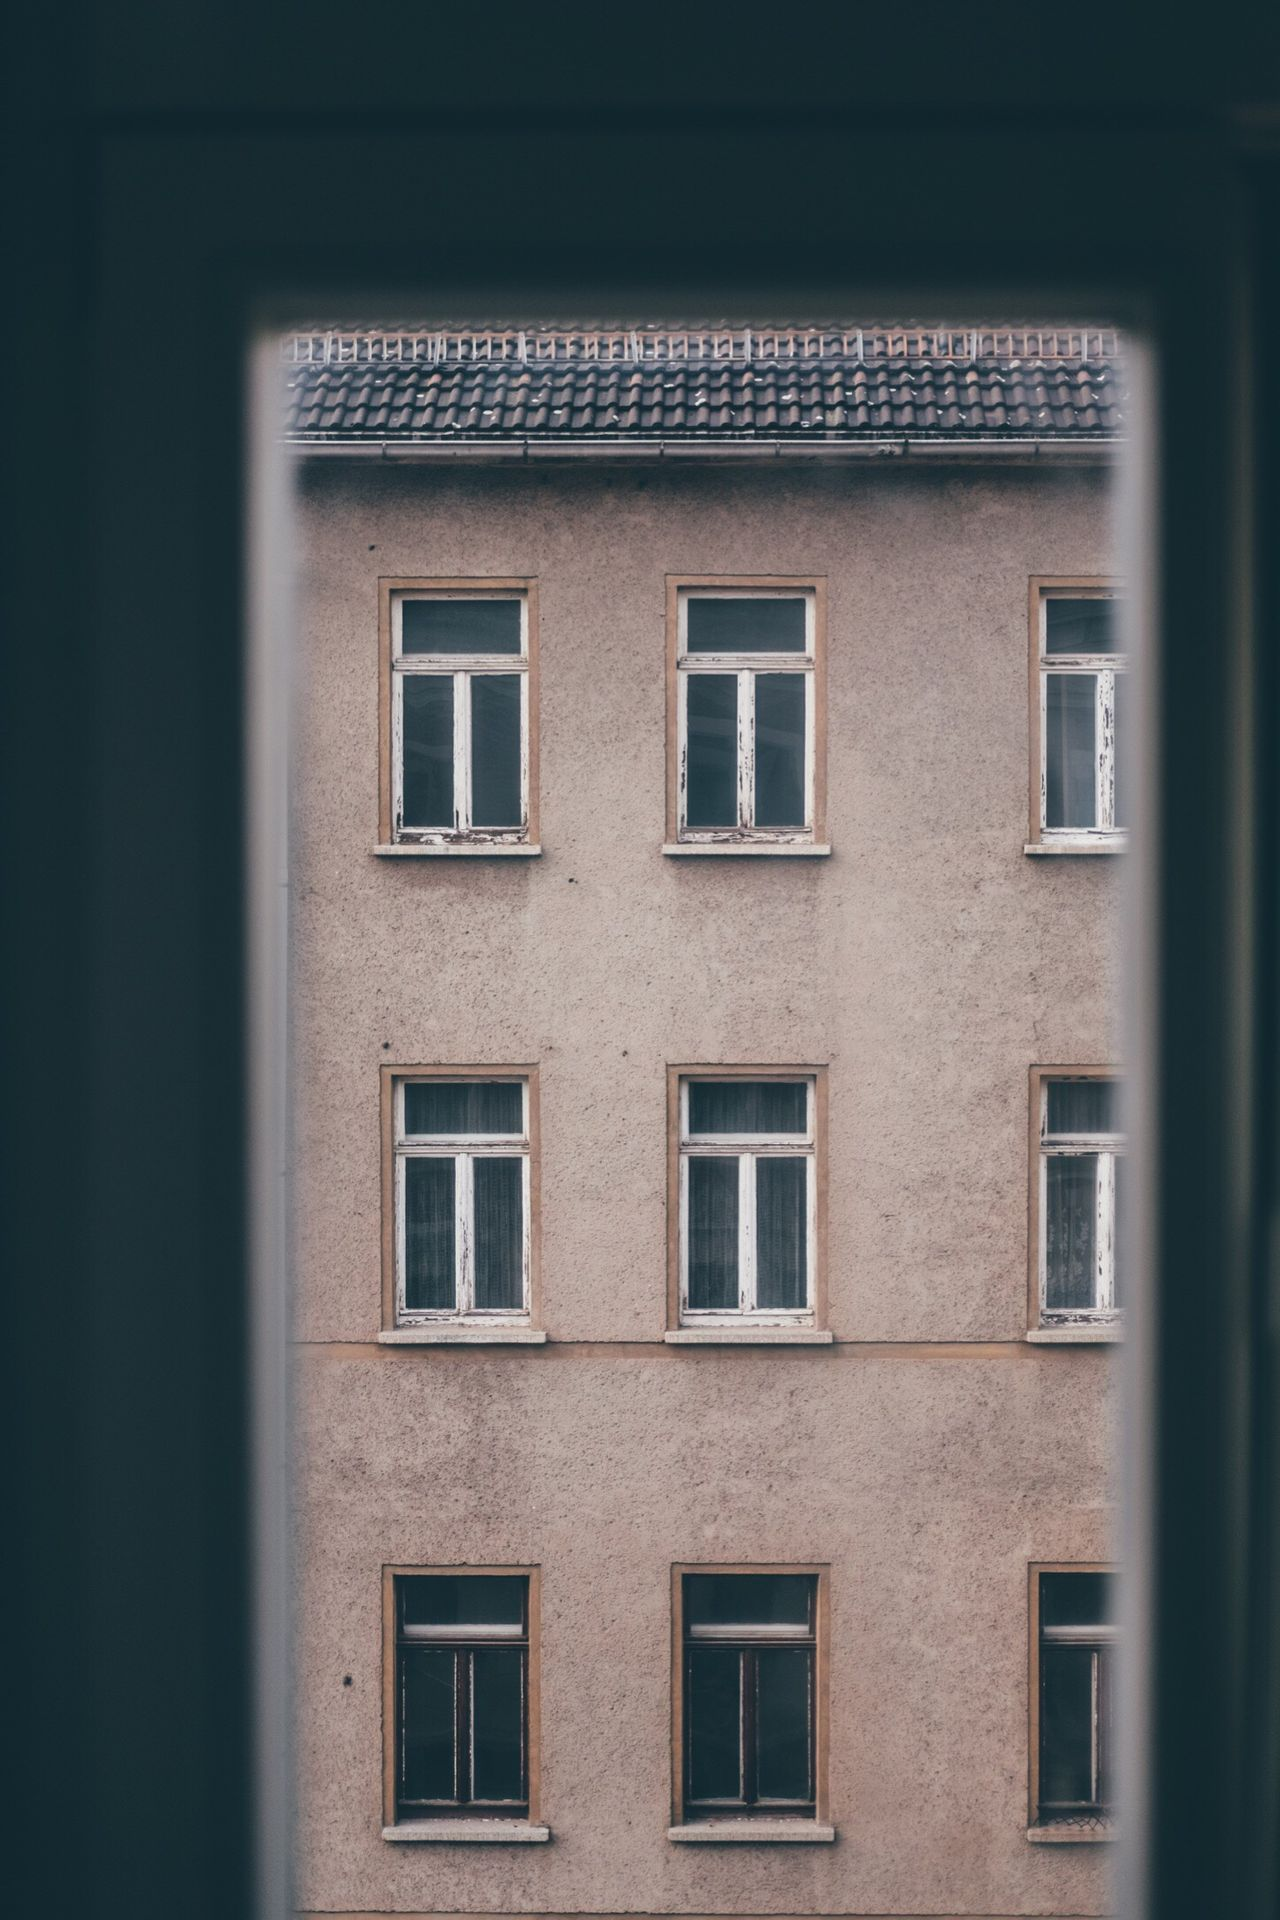 Building Exterior Window Architecture Built Structure Outdoors No People Day Window Look Outside Room POV German